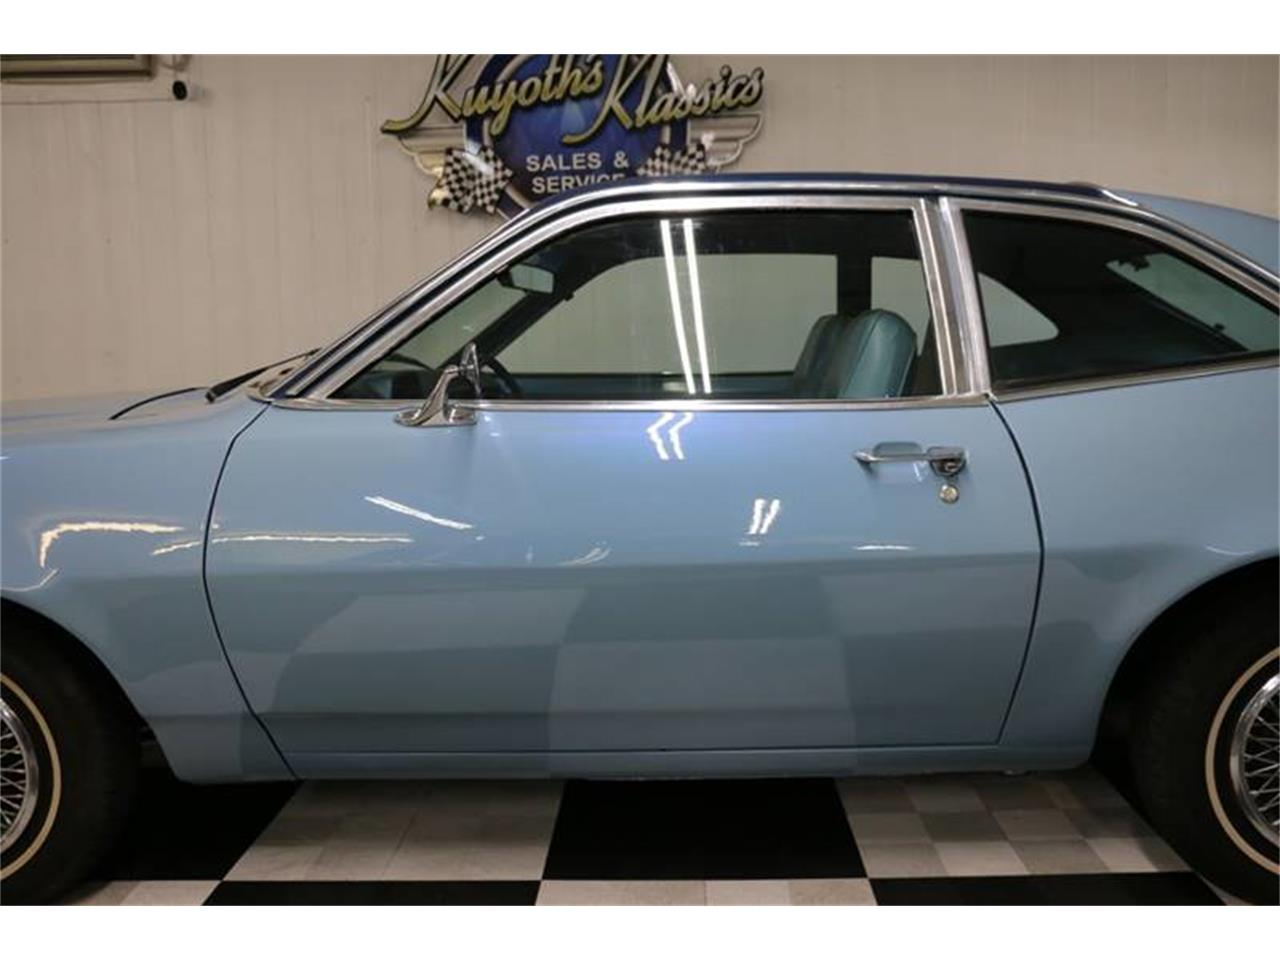 Large Picture of 1978 Mercury Bobcat located in Wisconsin - $12,995.00 Offered by Kuyoth's Klassics - QNTK